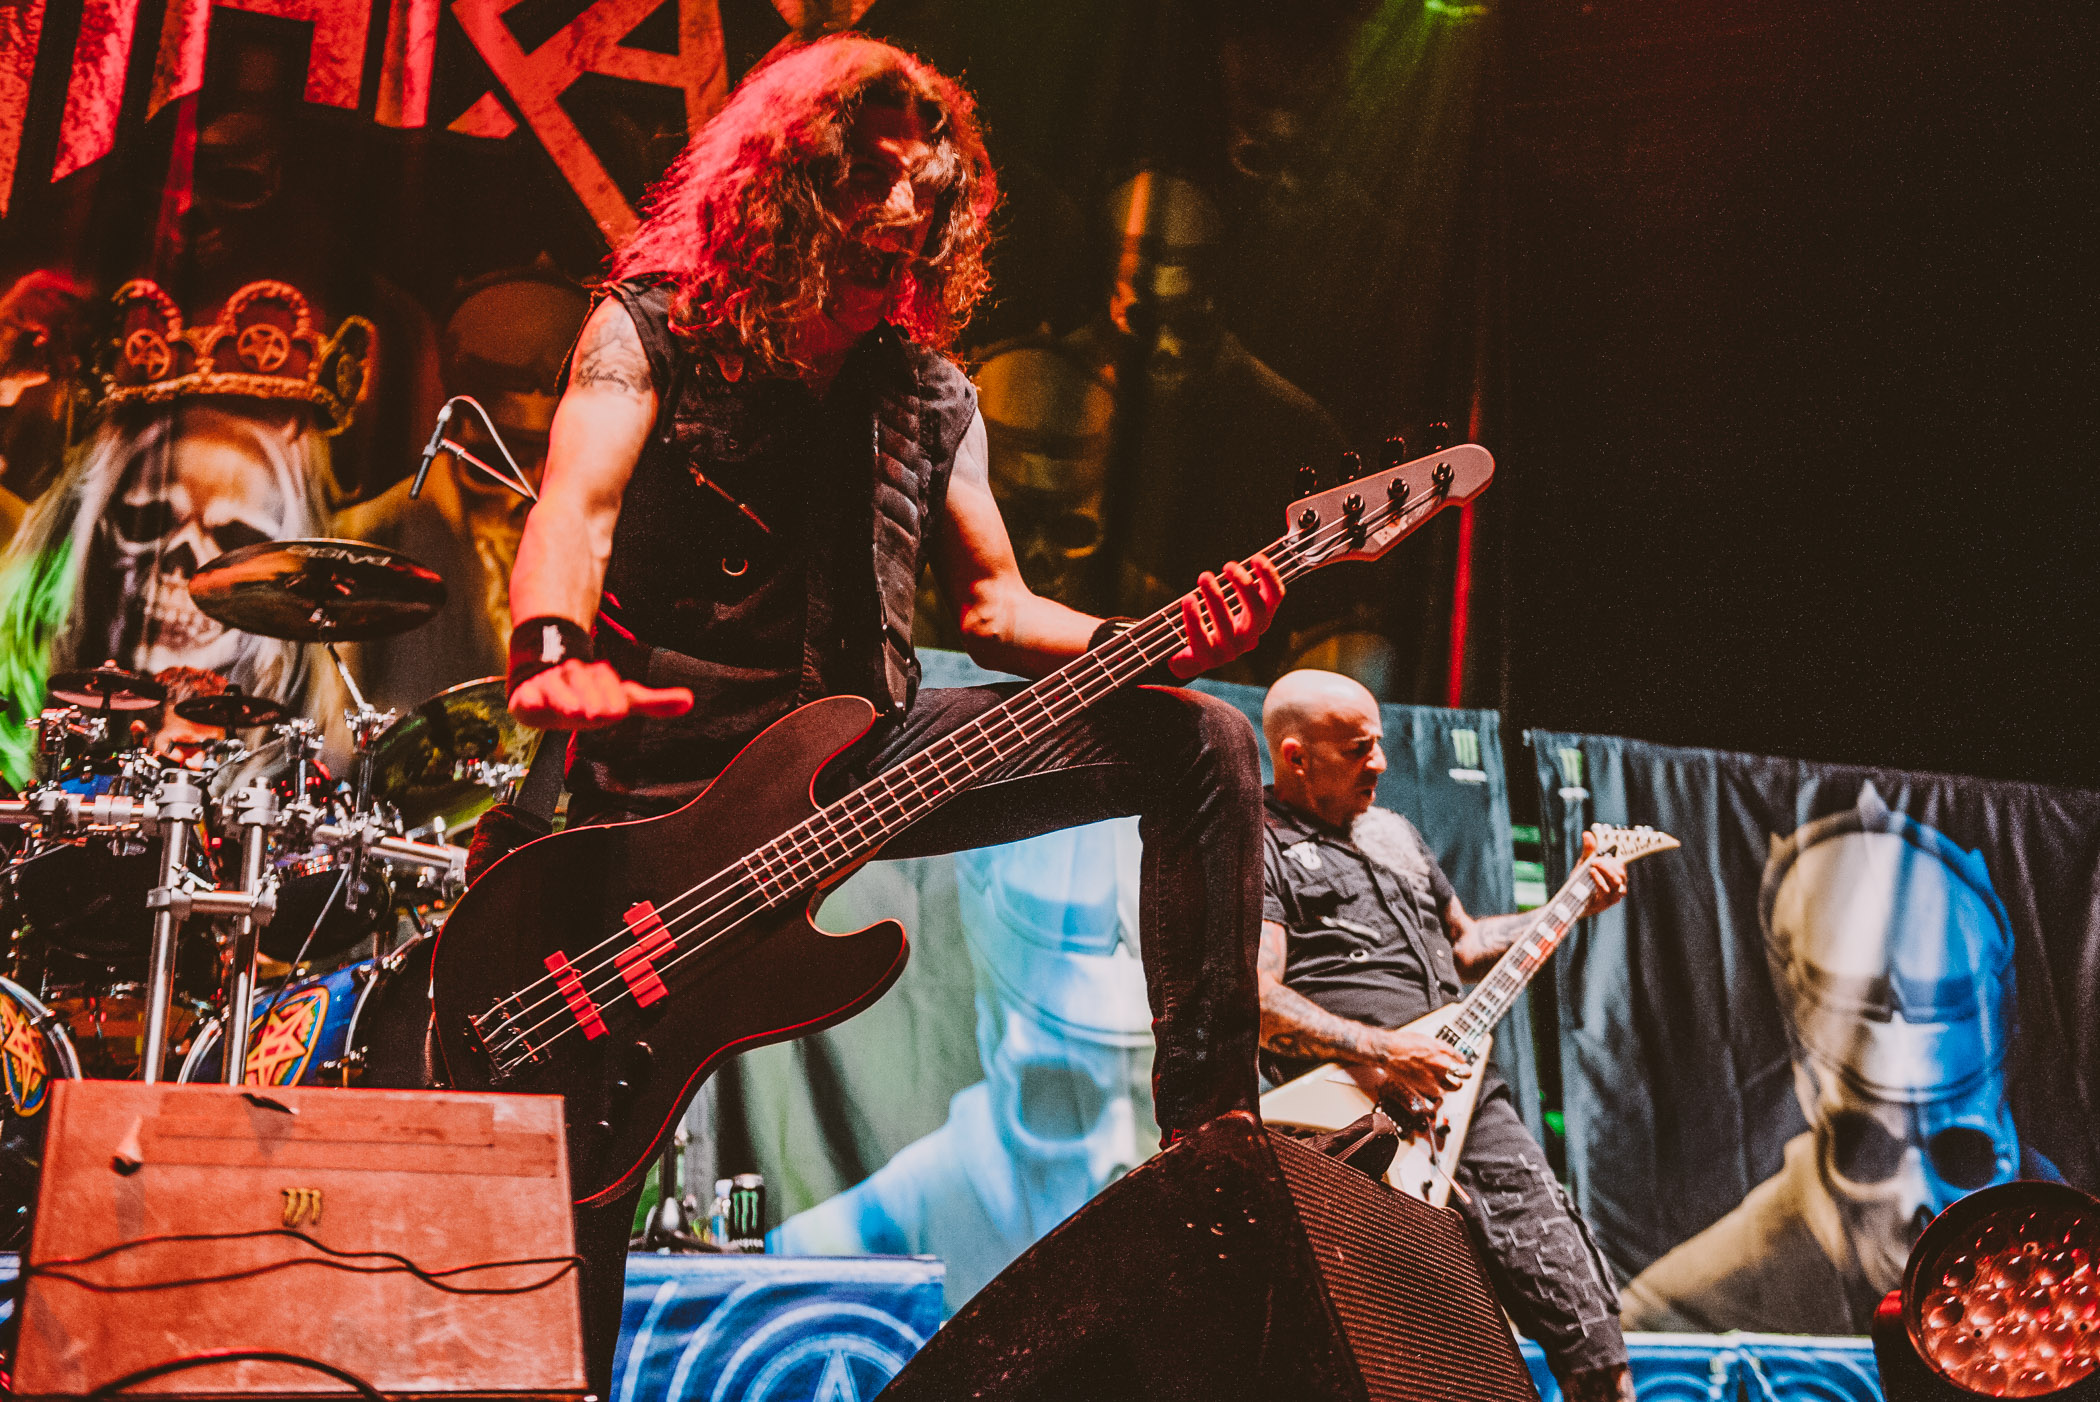 3_Anthrax-Pacific_Coliseum-Timothy_Nguyen-20180516-13.jpg